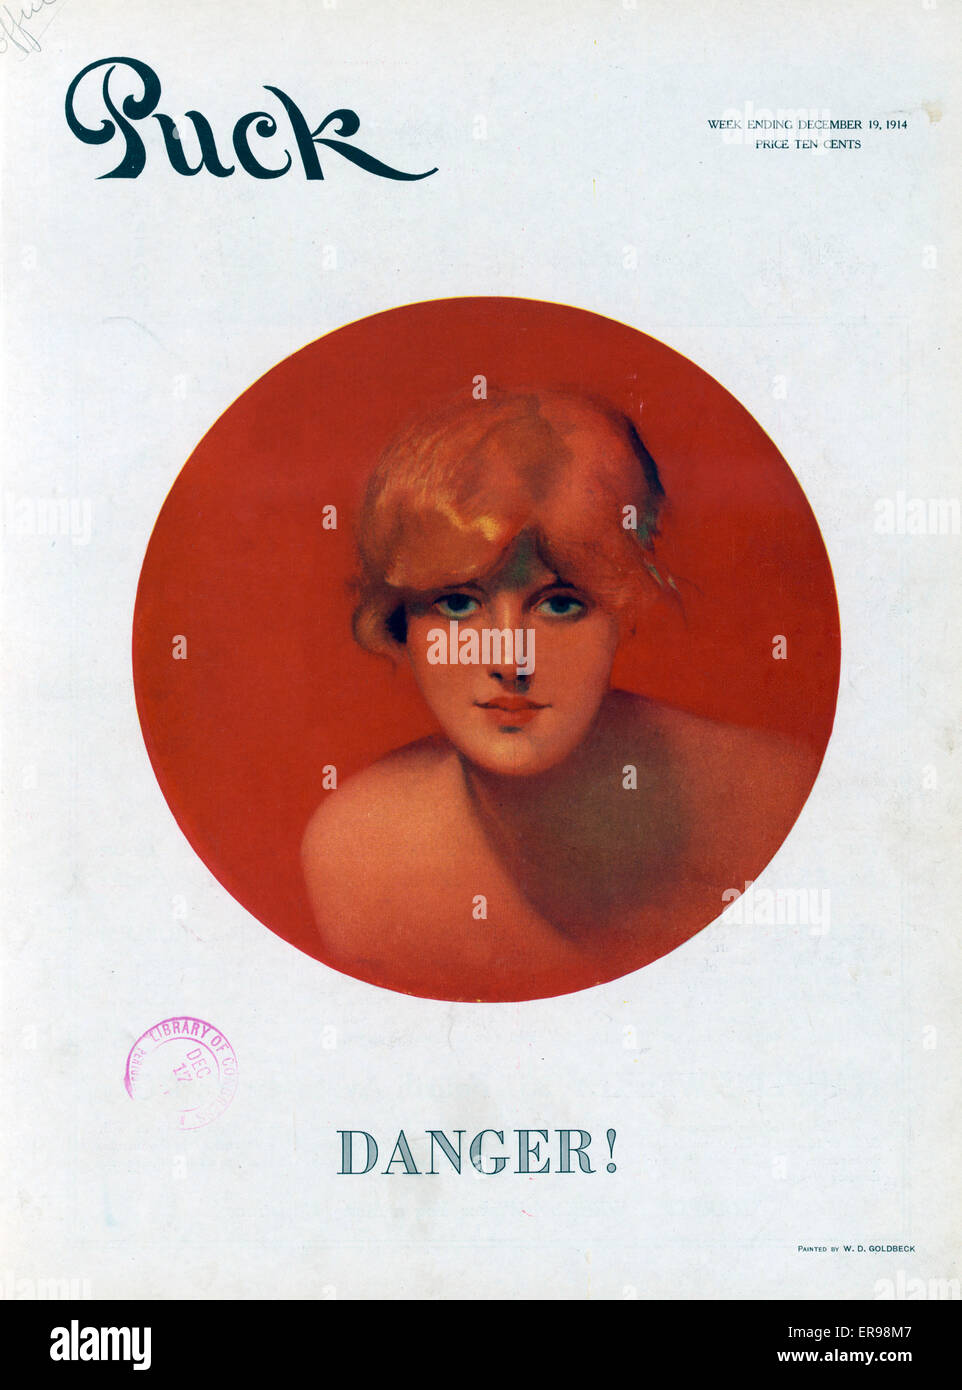 Danger. Illustration shows a head-and-shoulders portrait of a beautiful young woman, facing front, in a red circle. - Stock Image